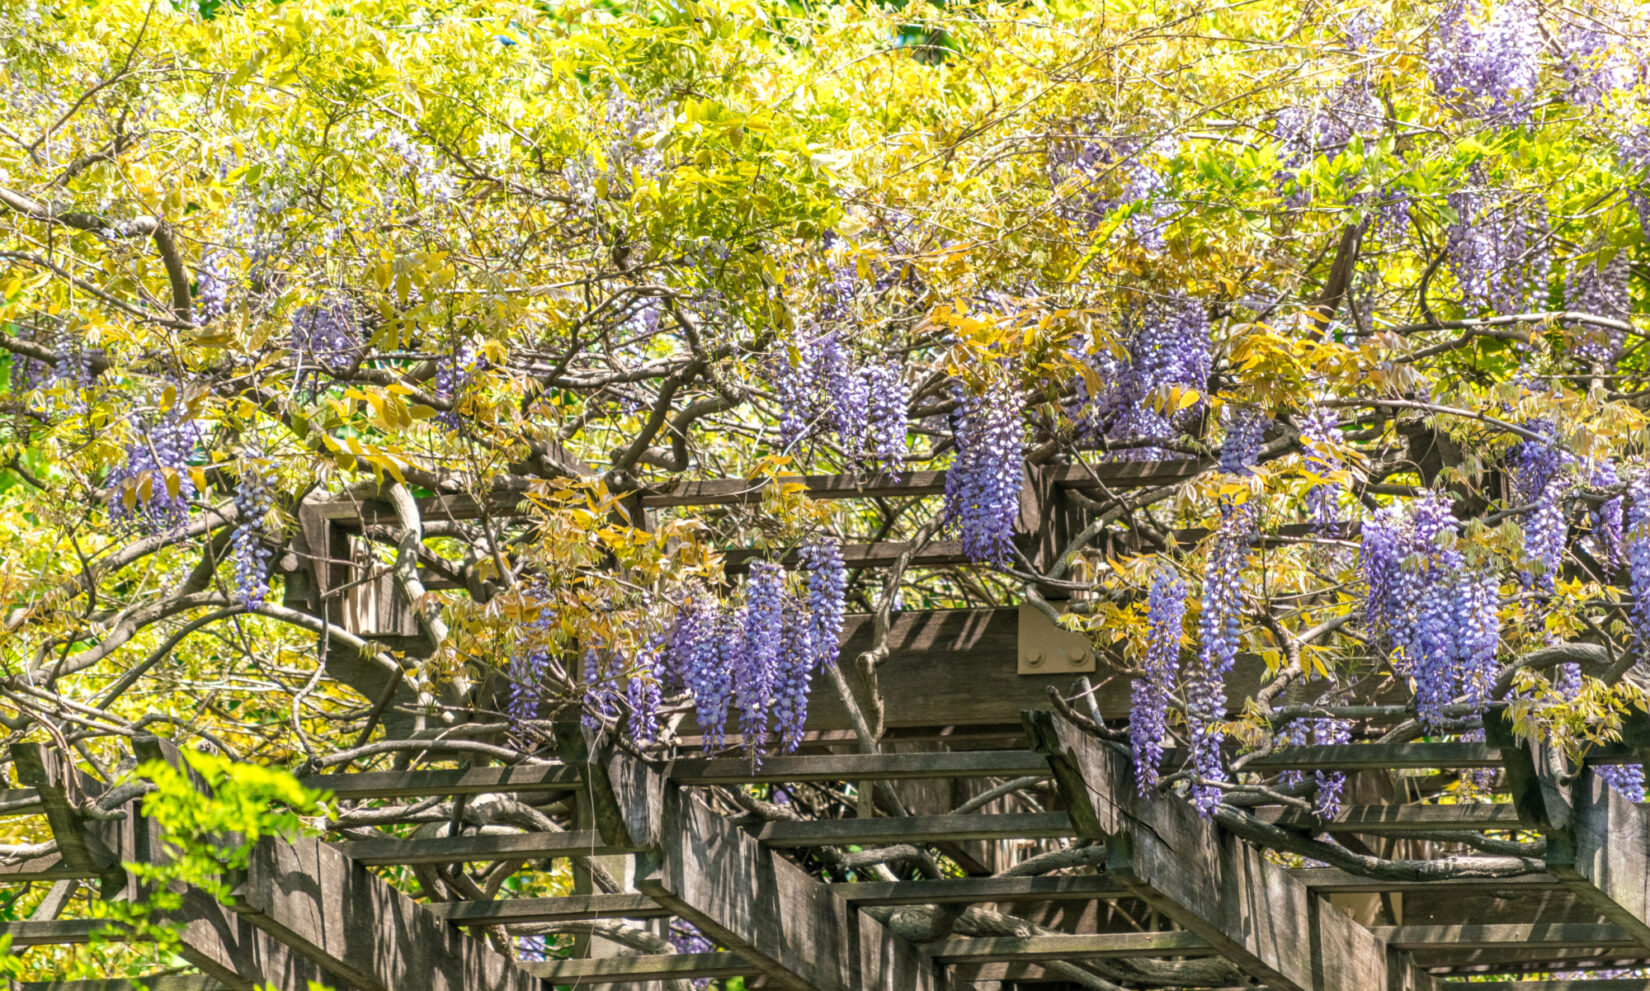 The purple blooms of wisteria highlight the rustic structure of the pergola